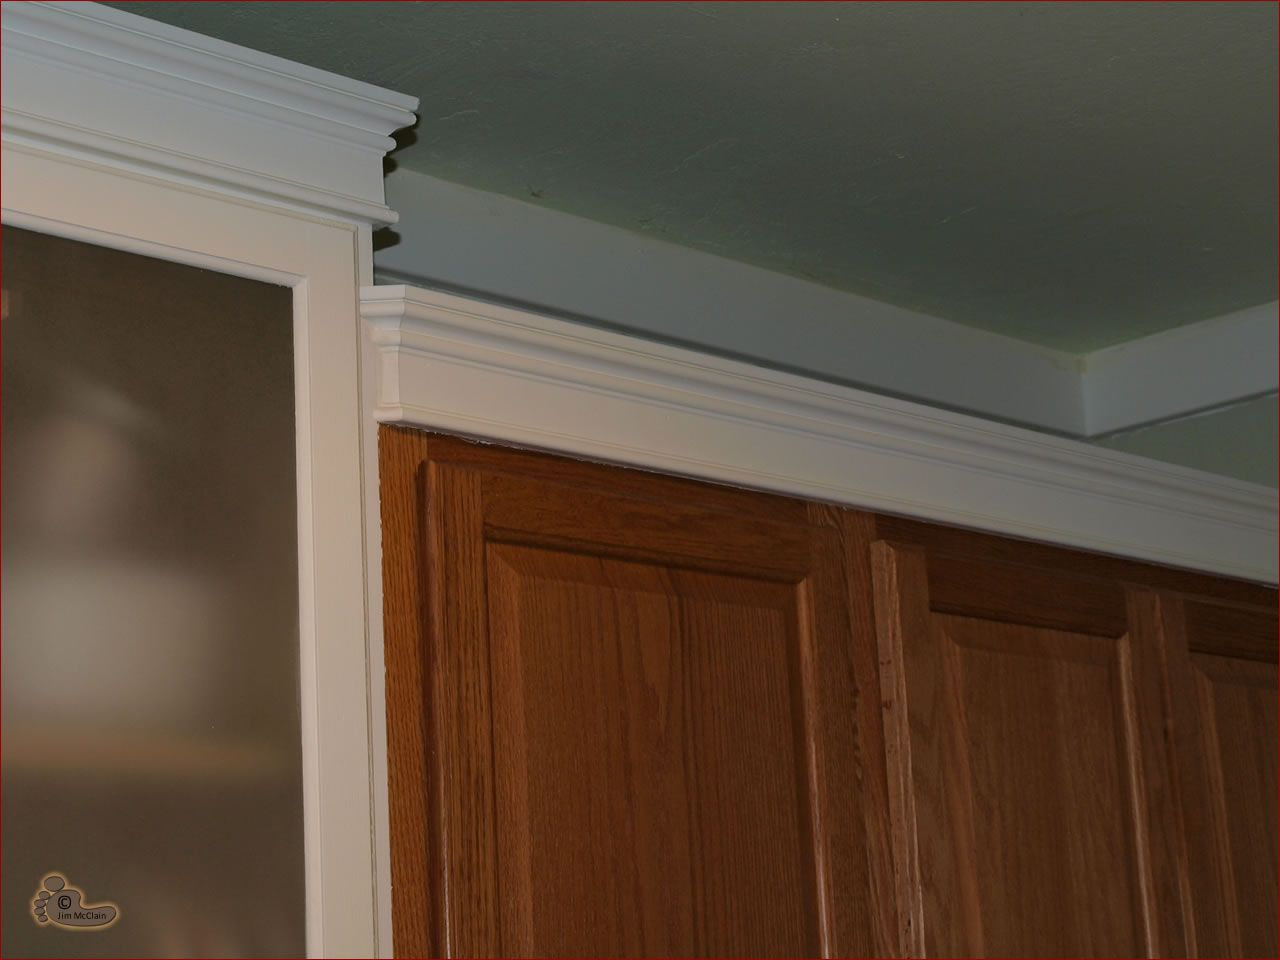 Top Cabinet Molding On Adding Crown Kitchen Cabinets Cornice2 Jpg